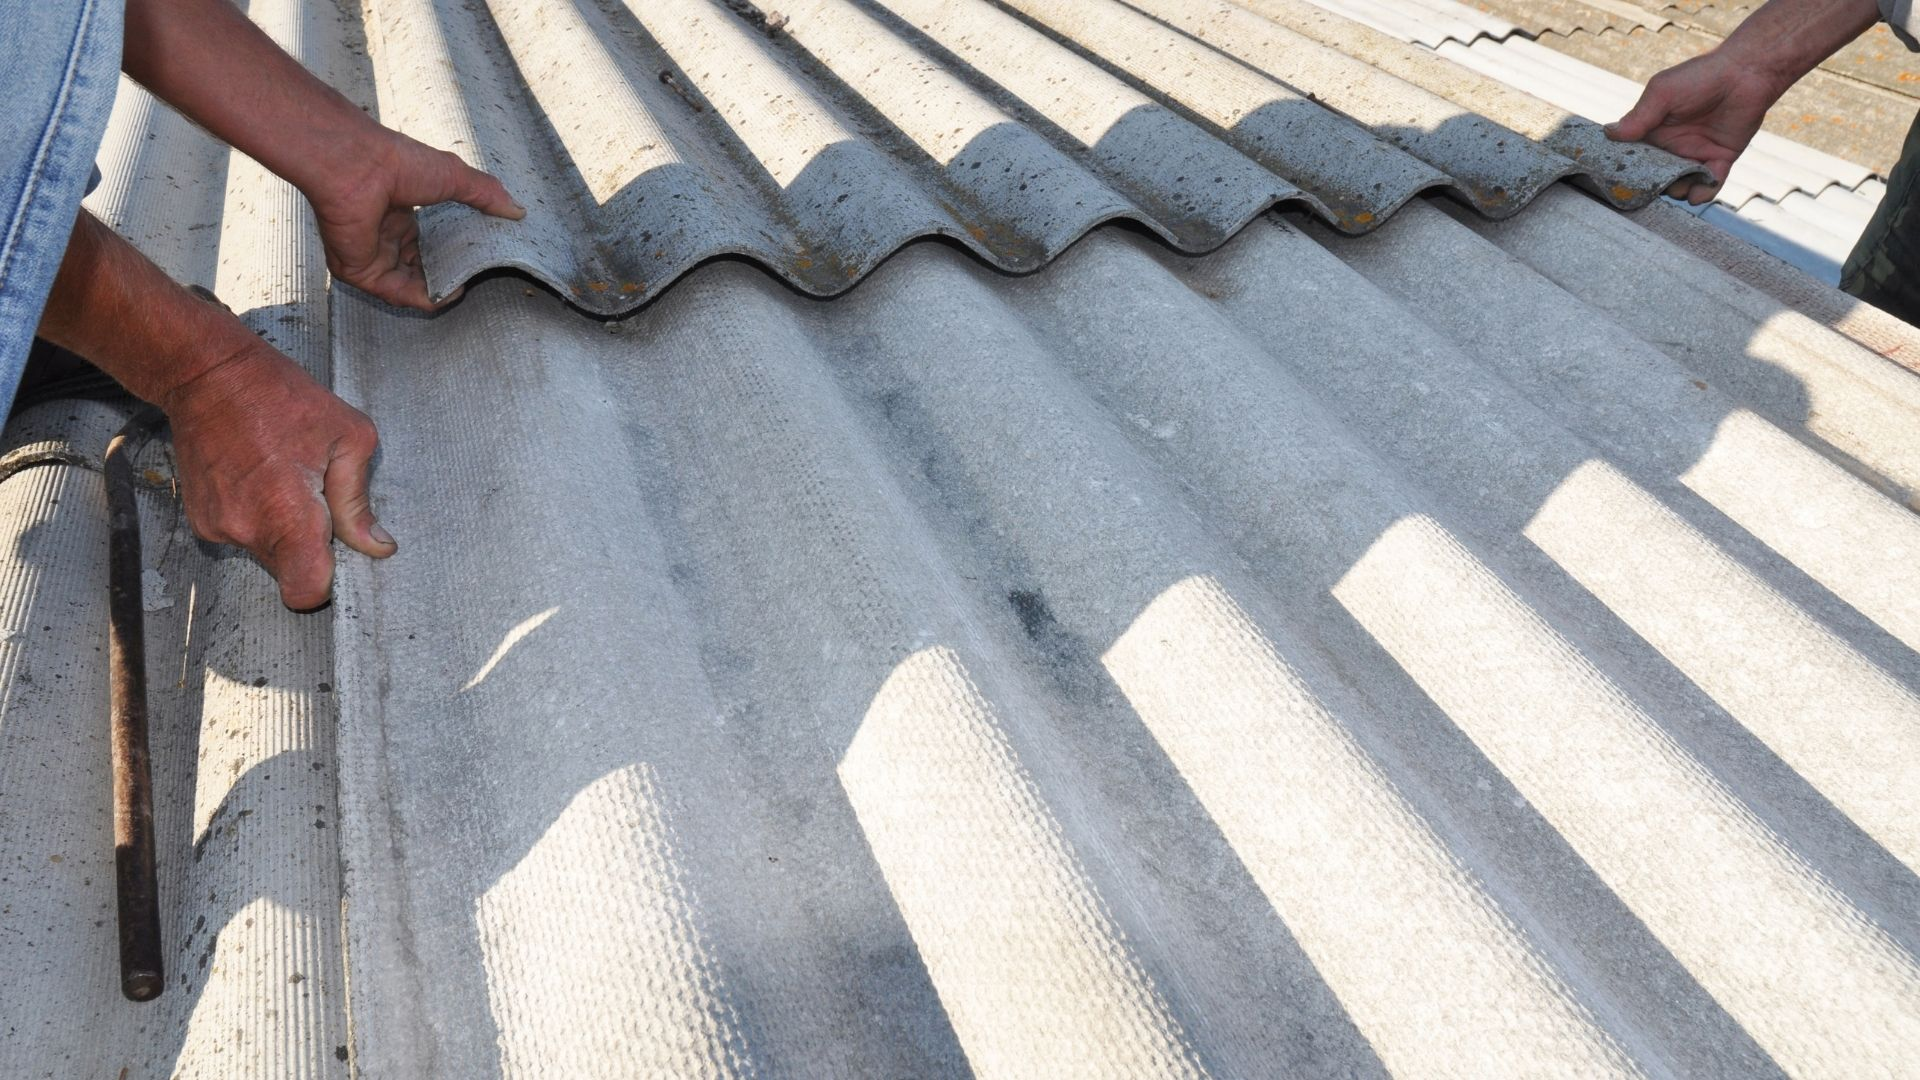 How will roof replacement take place